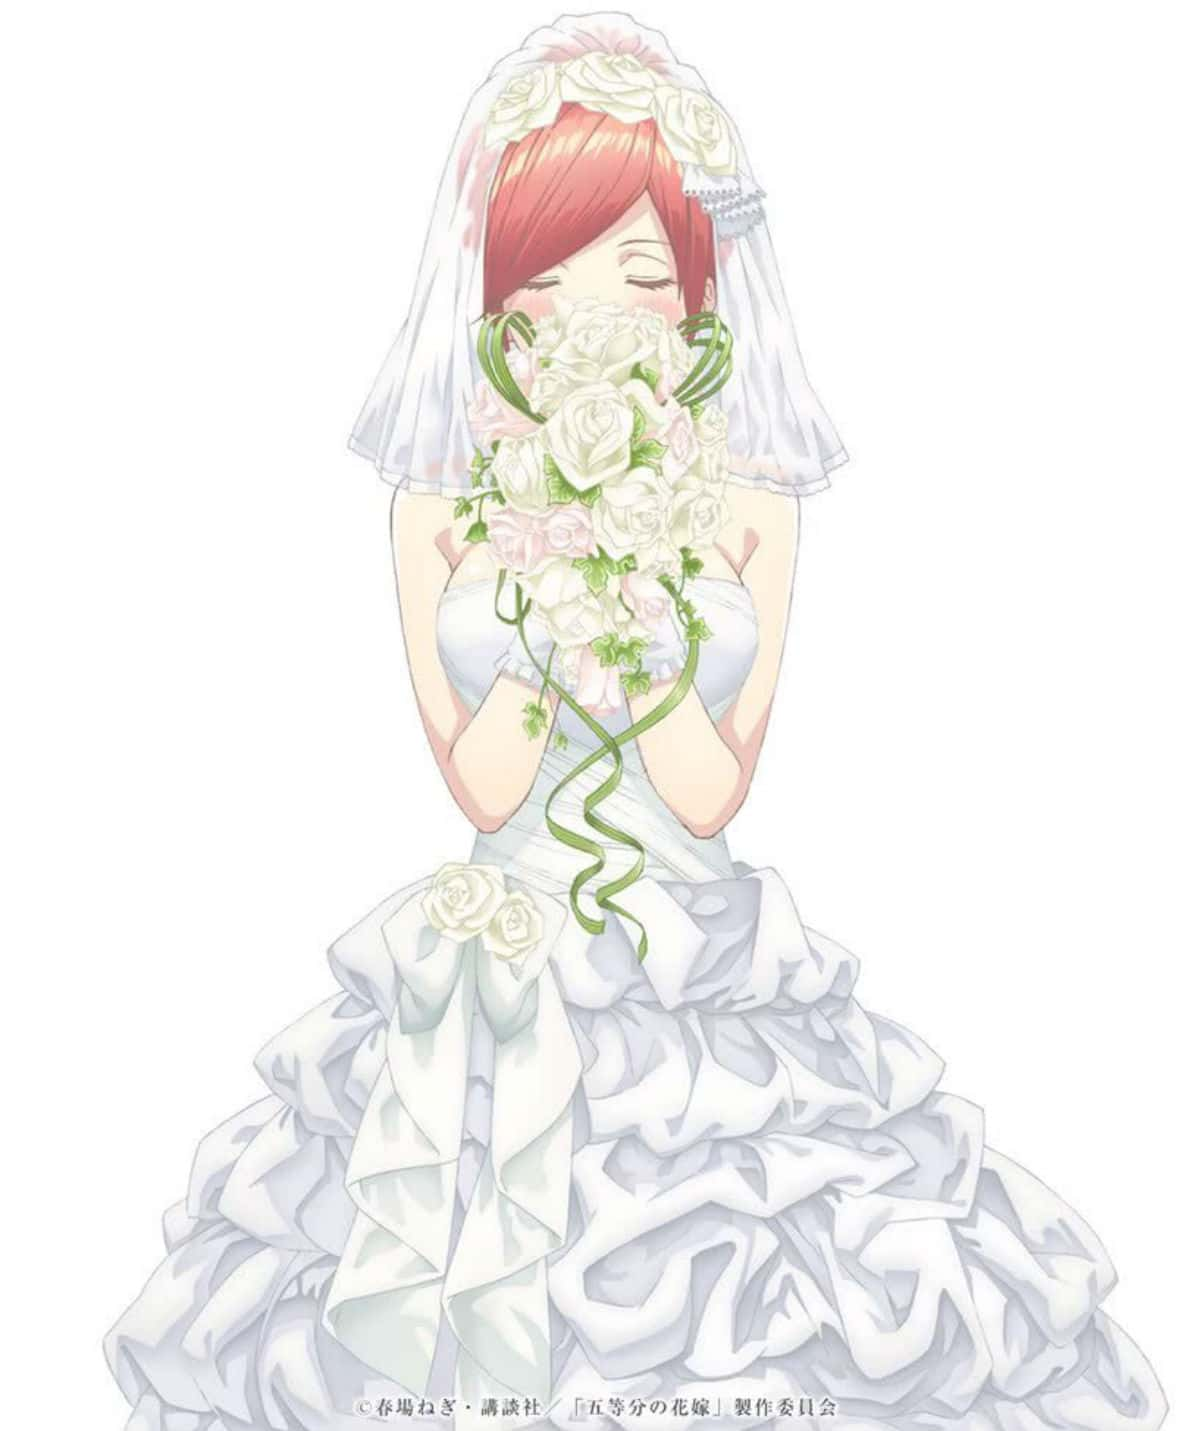 The Quintessential Quintuplets Bride